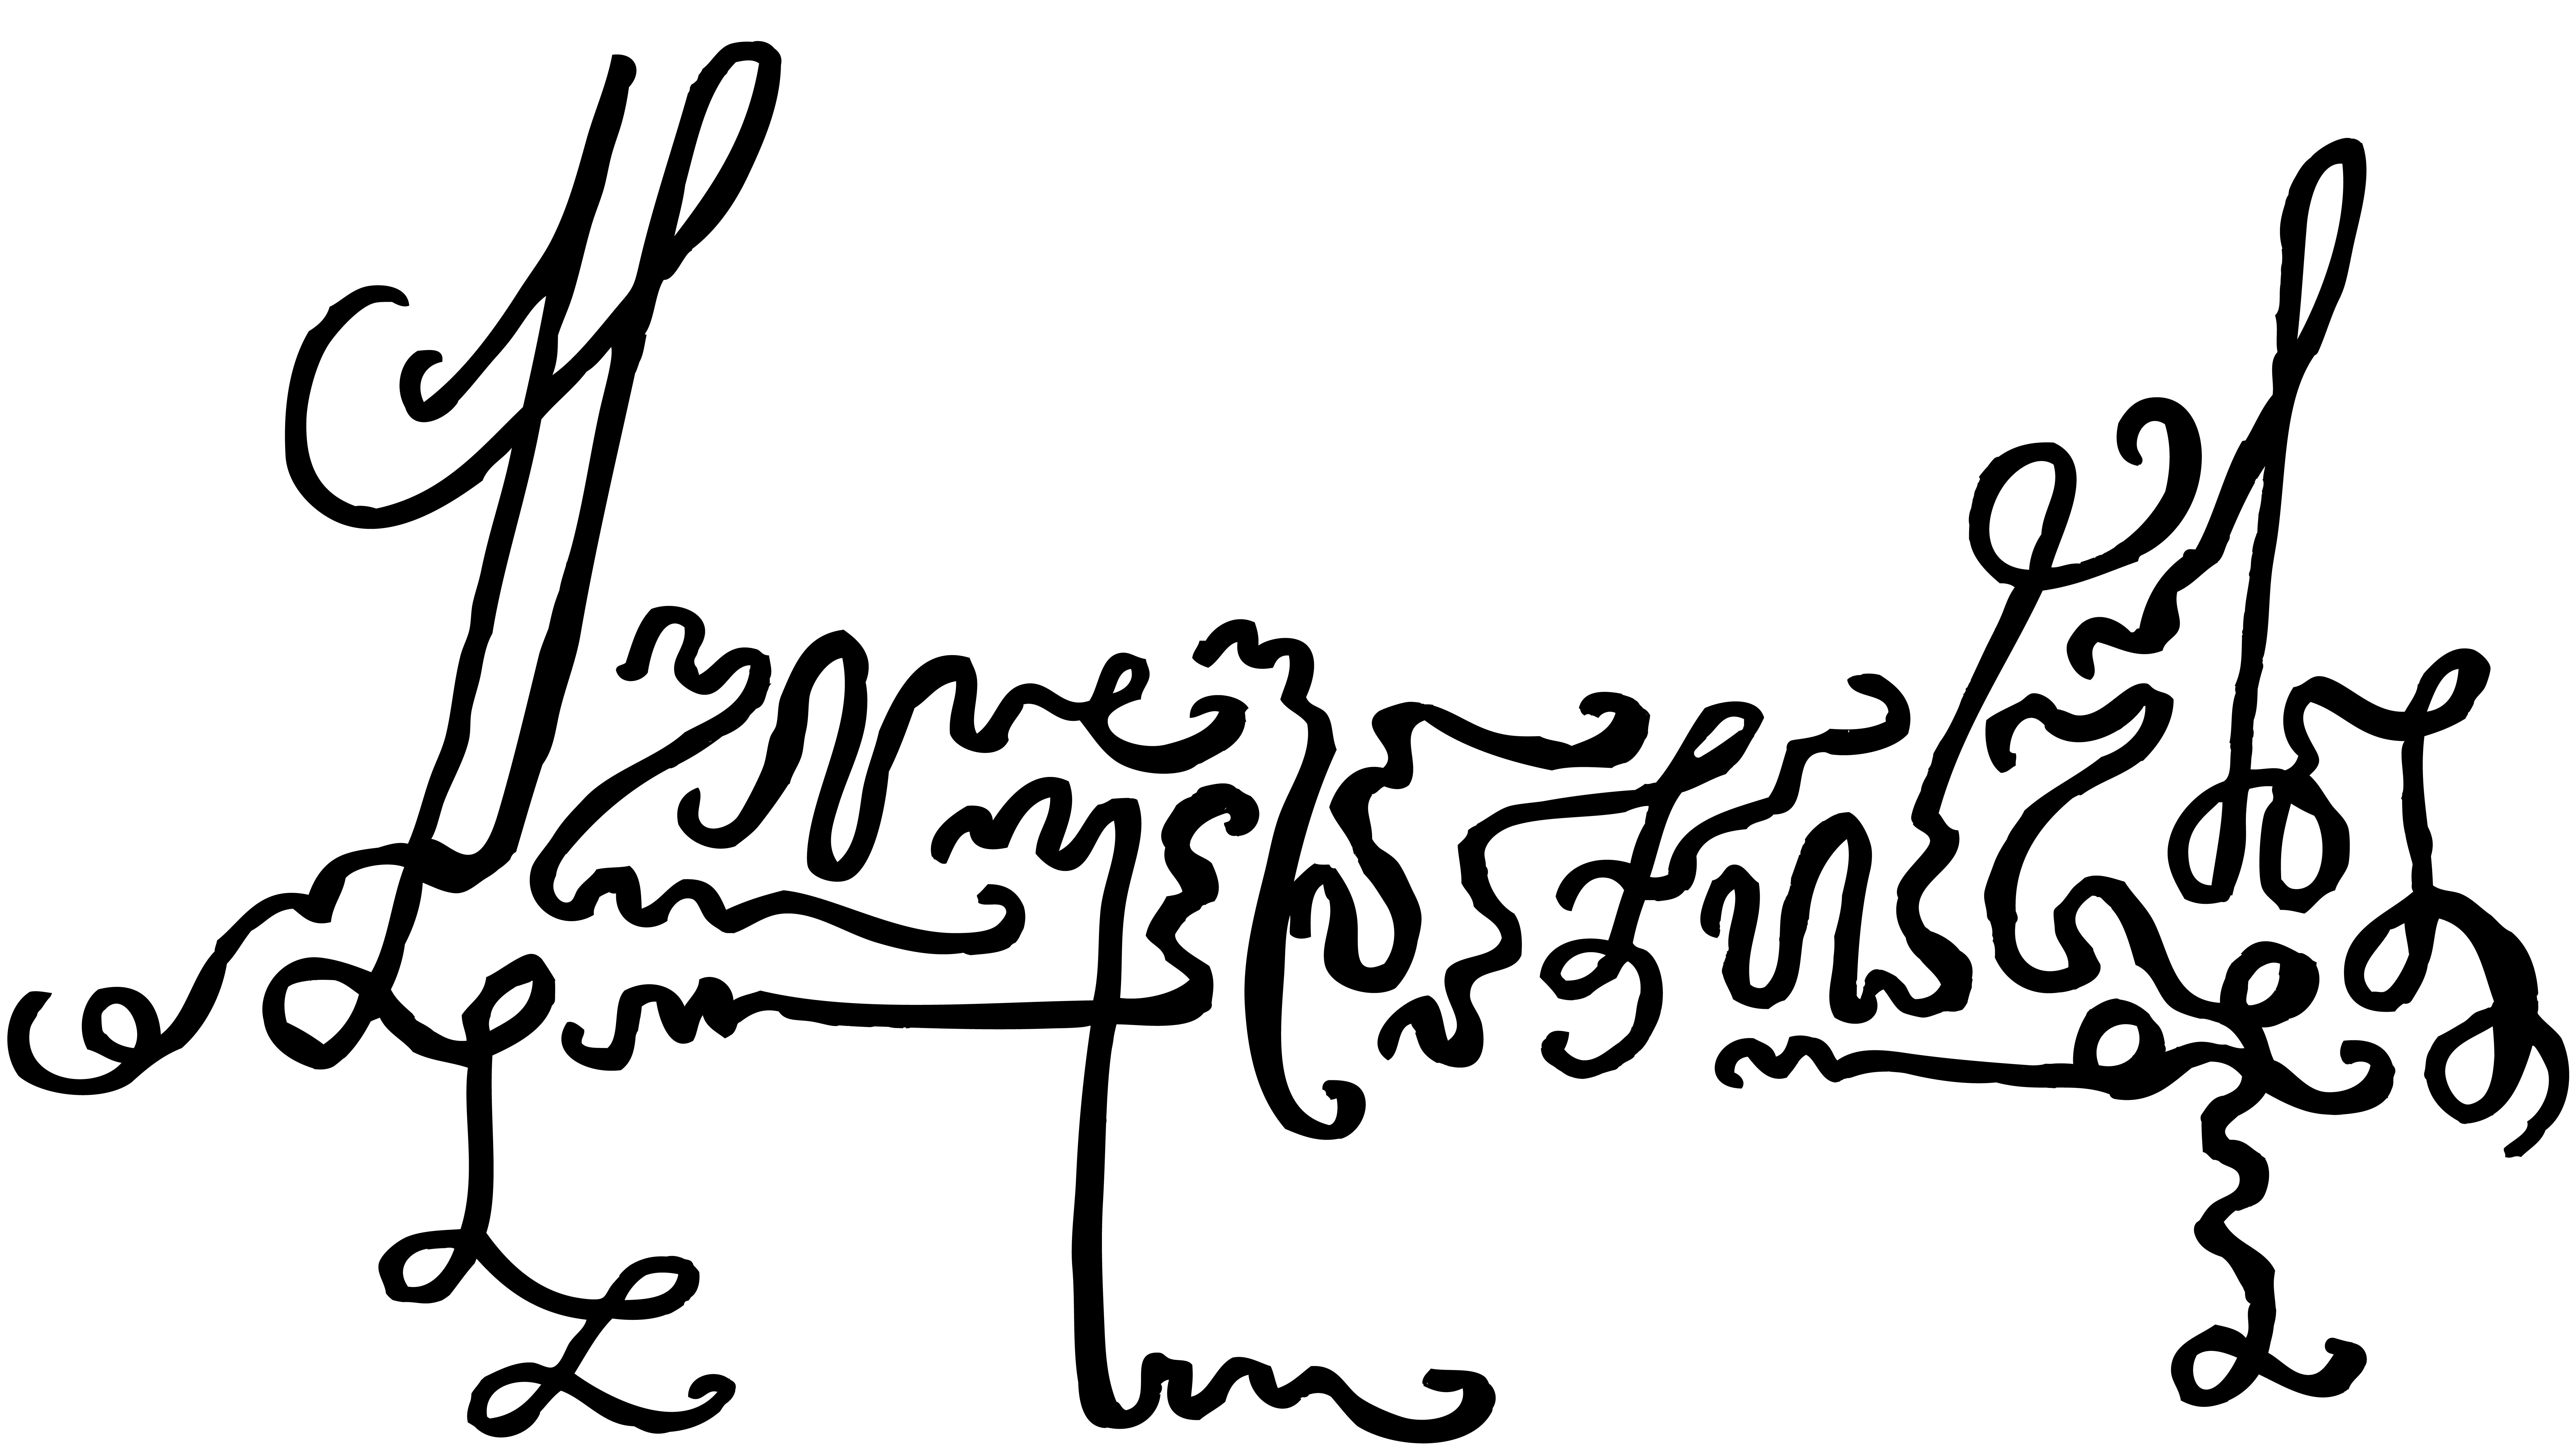 Sigil for the combined angelic orders of Atlantis